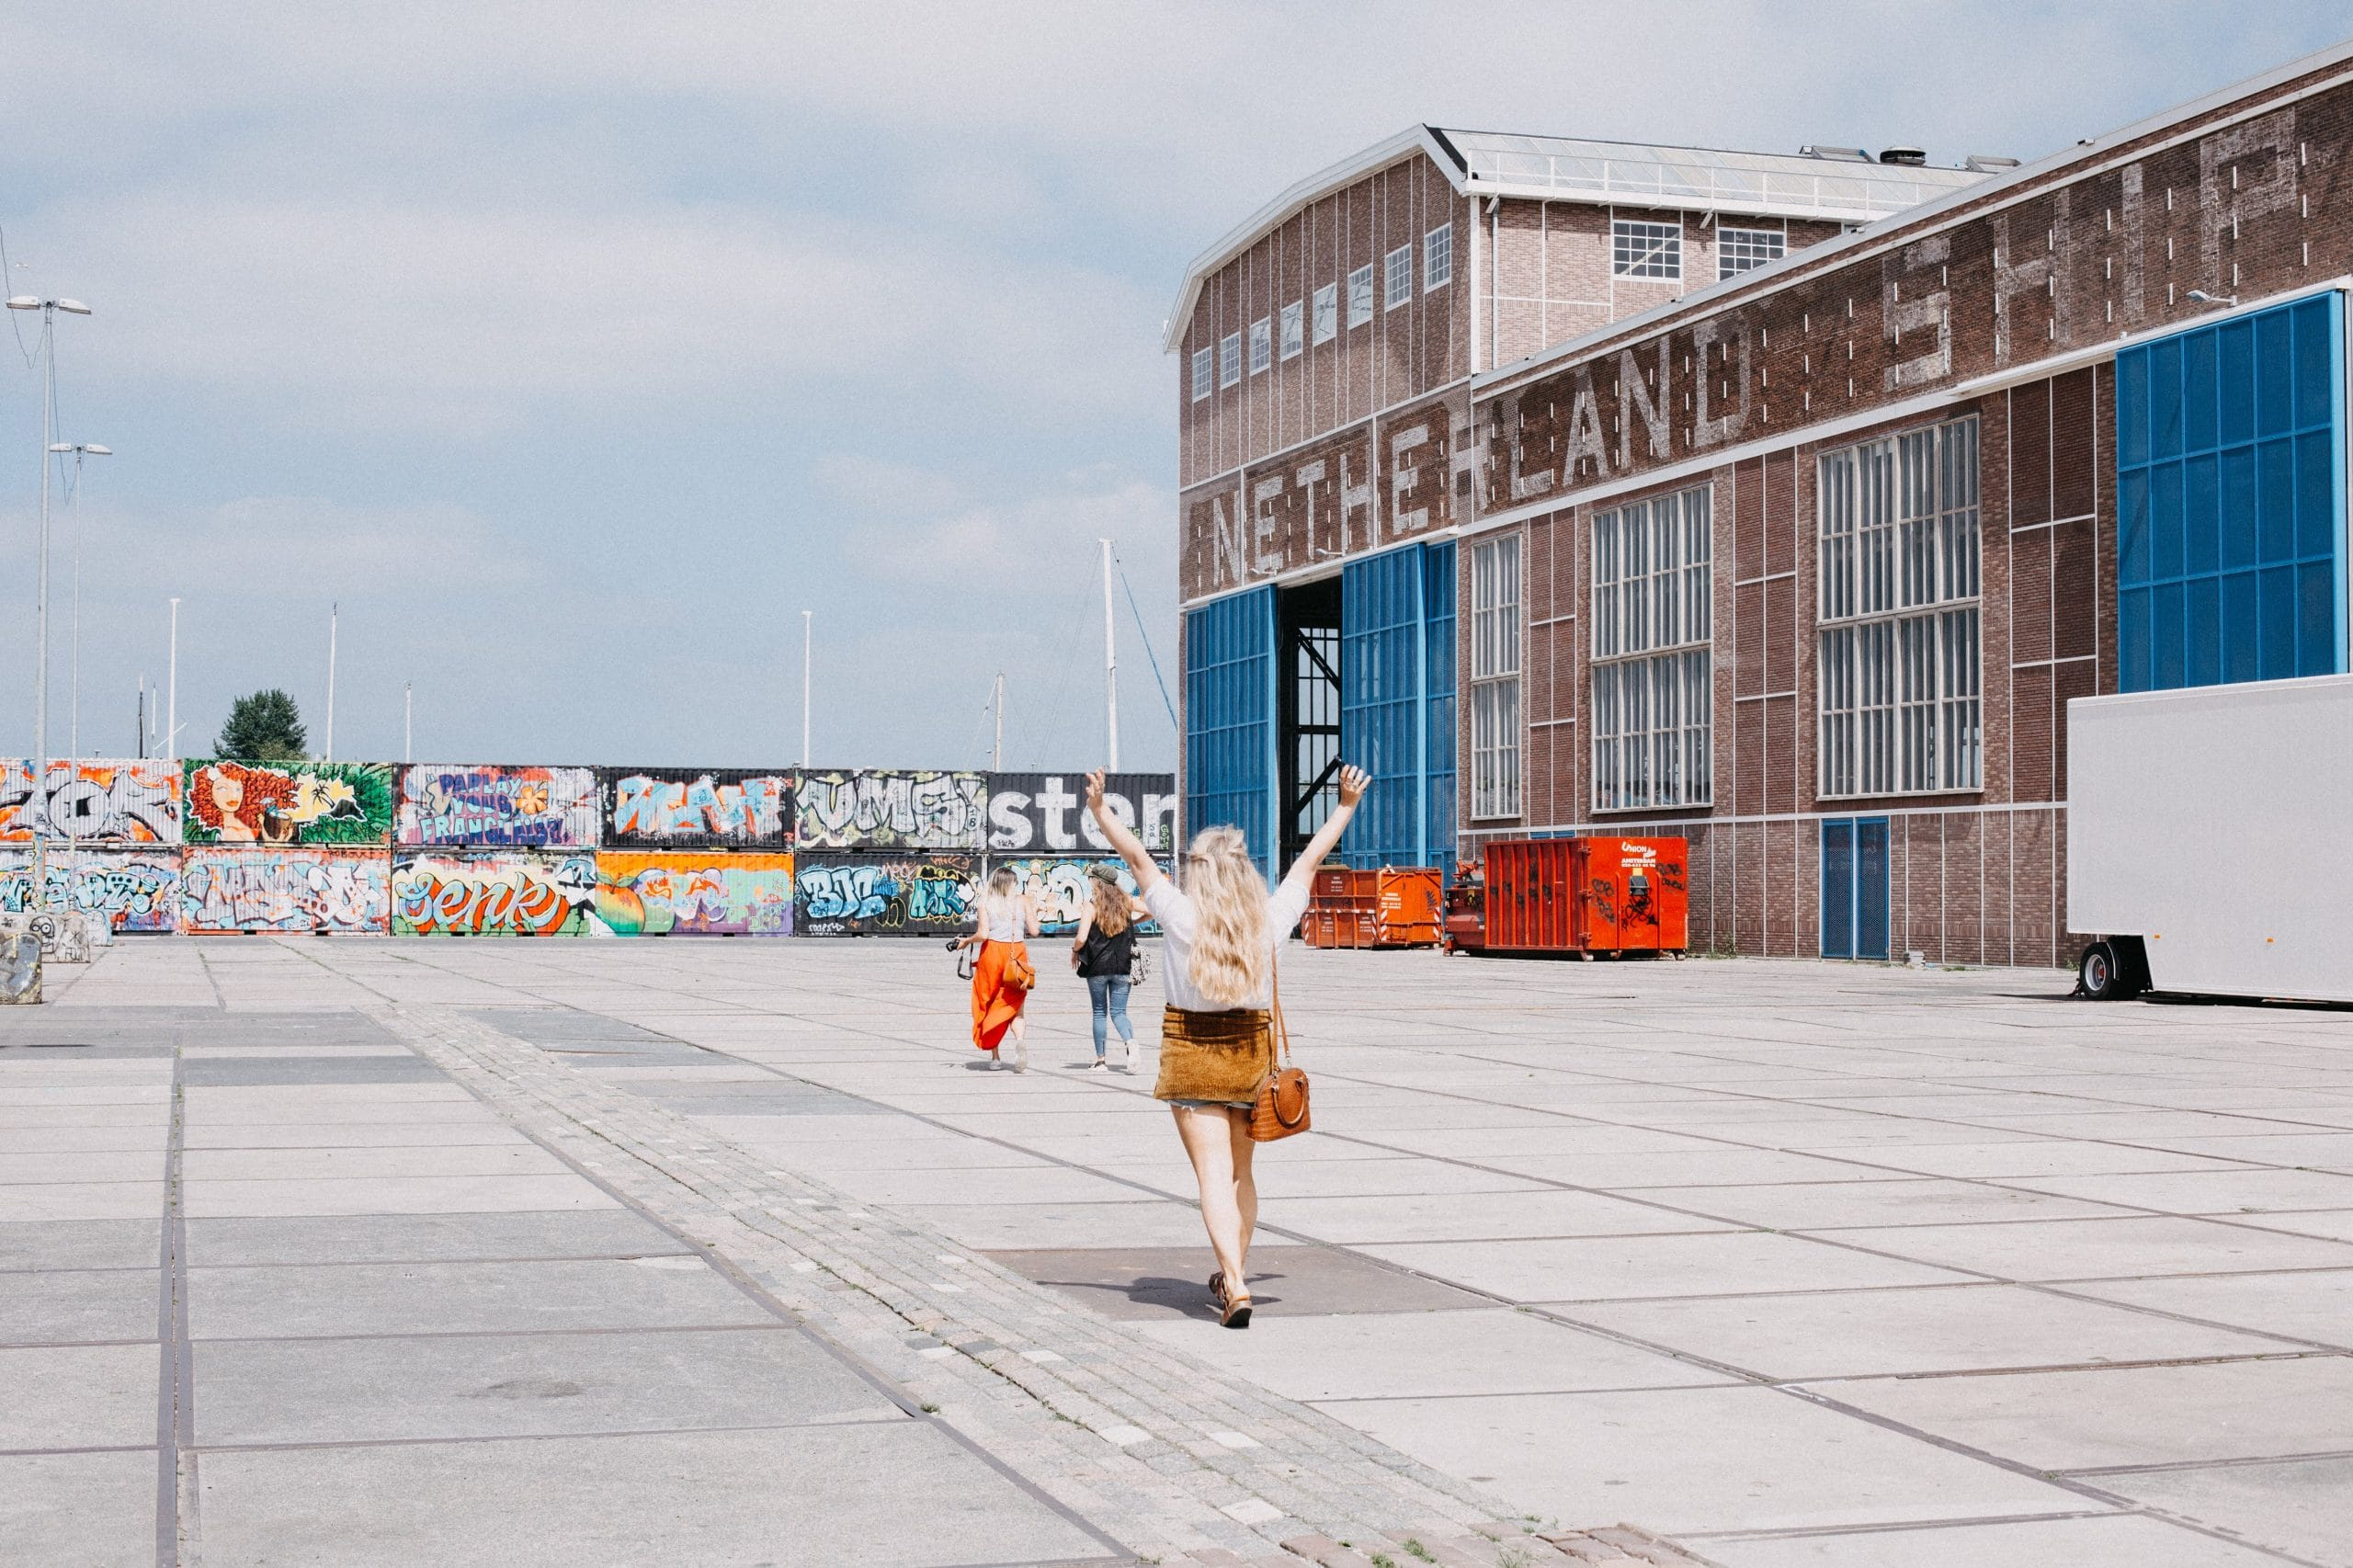 NDSM Top things to do in Amsterdam Noord